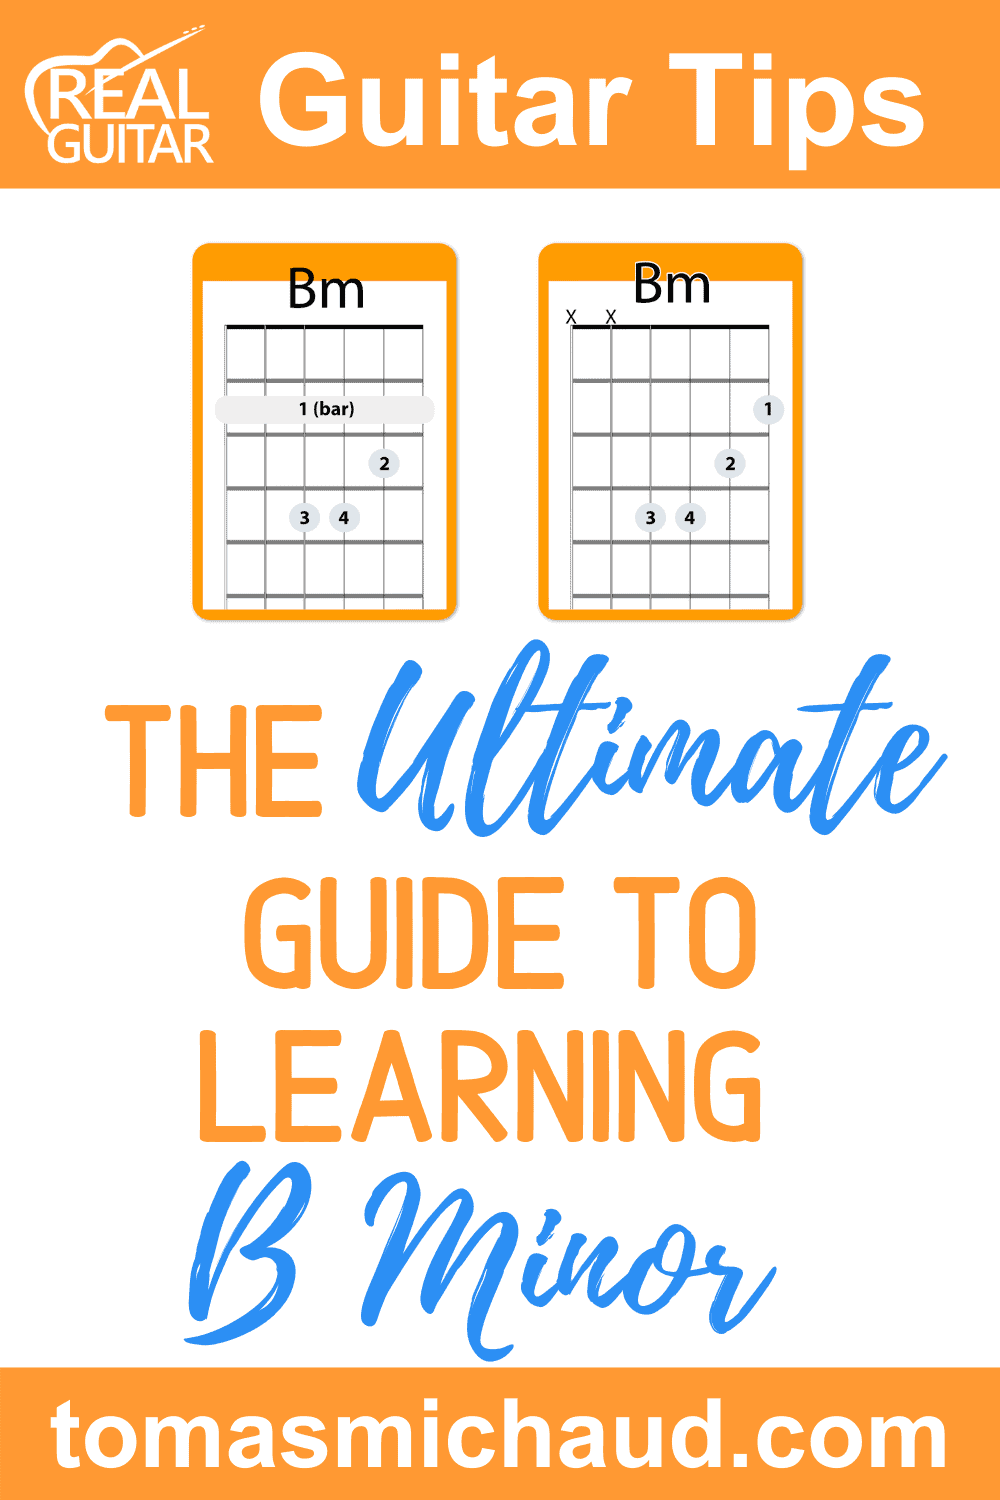 The Ultimate Guide to Learning B Minor